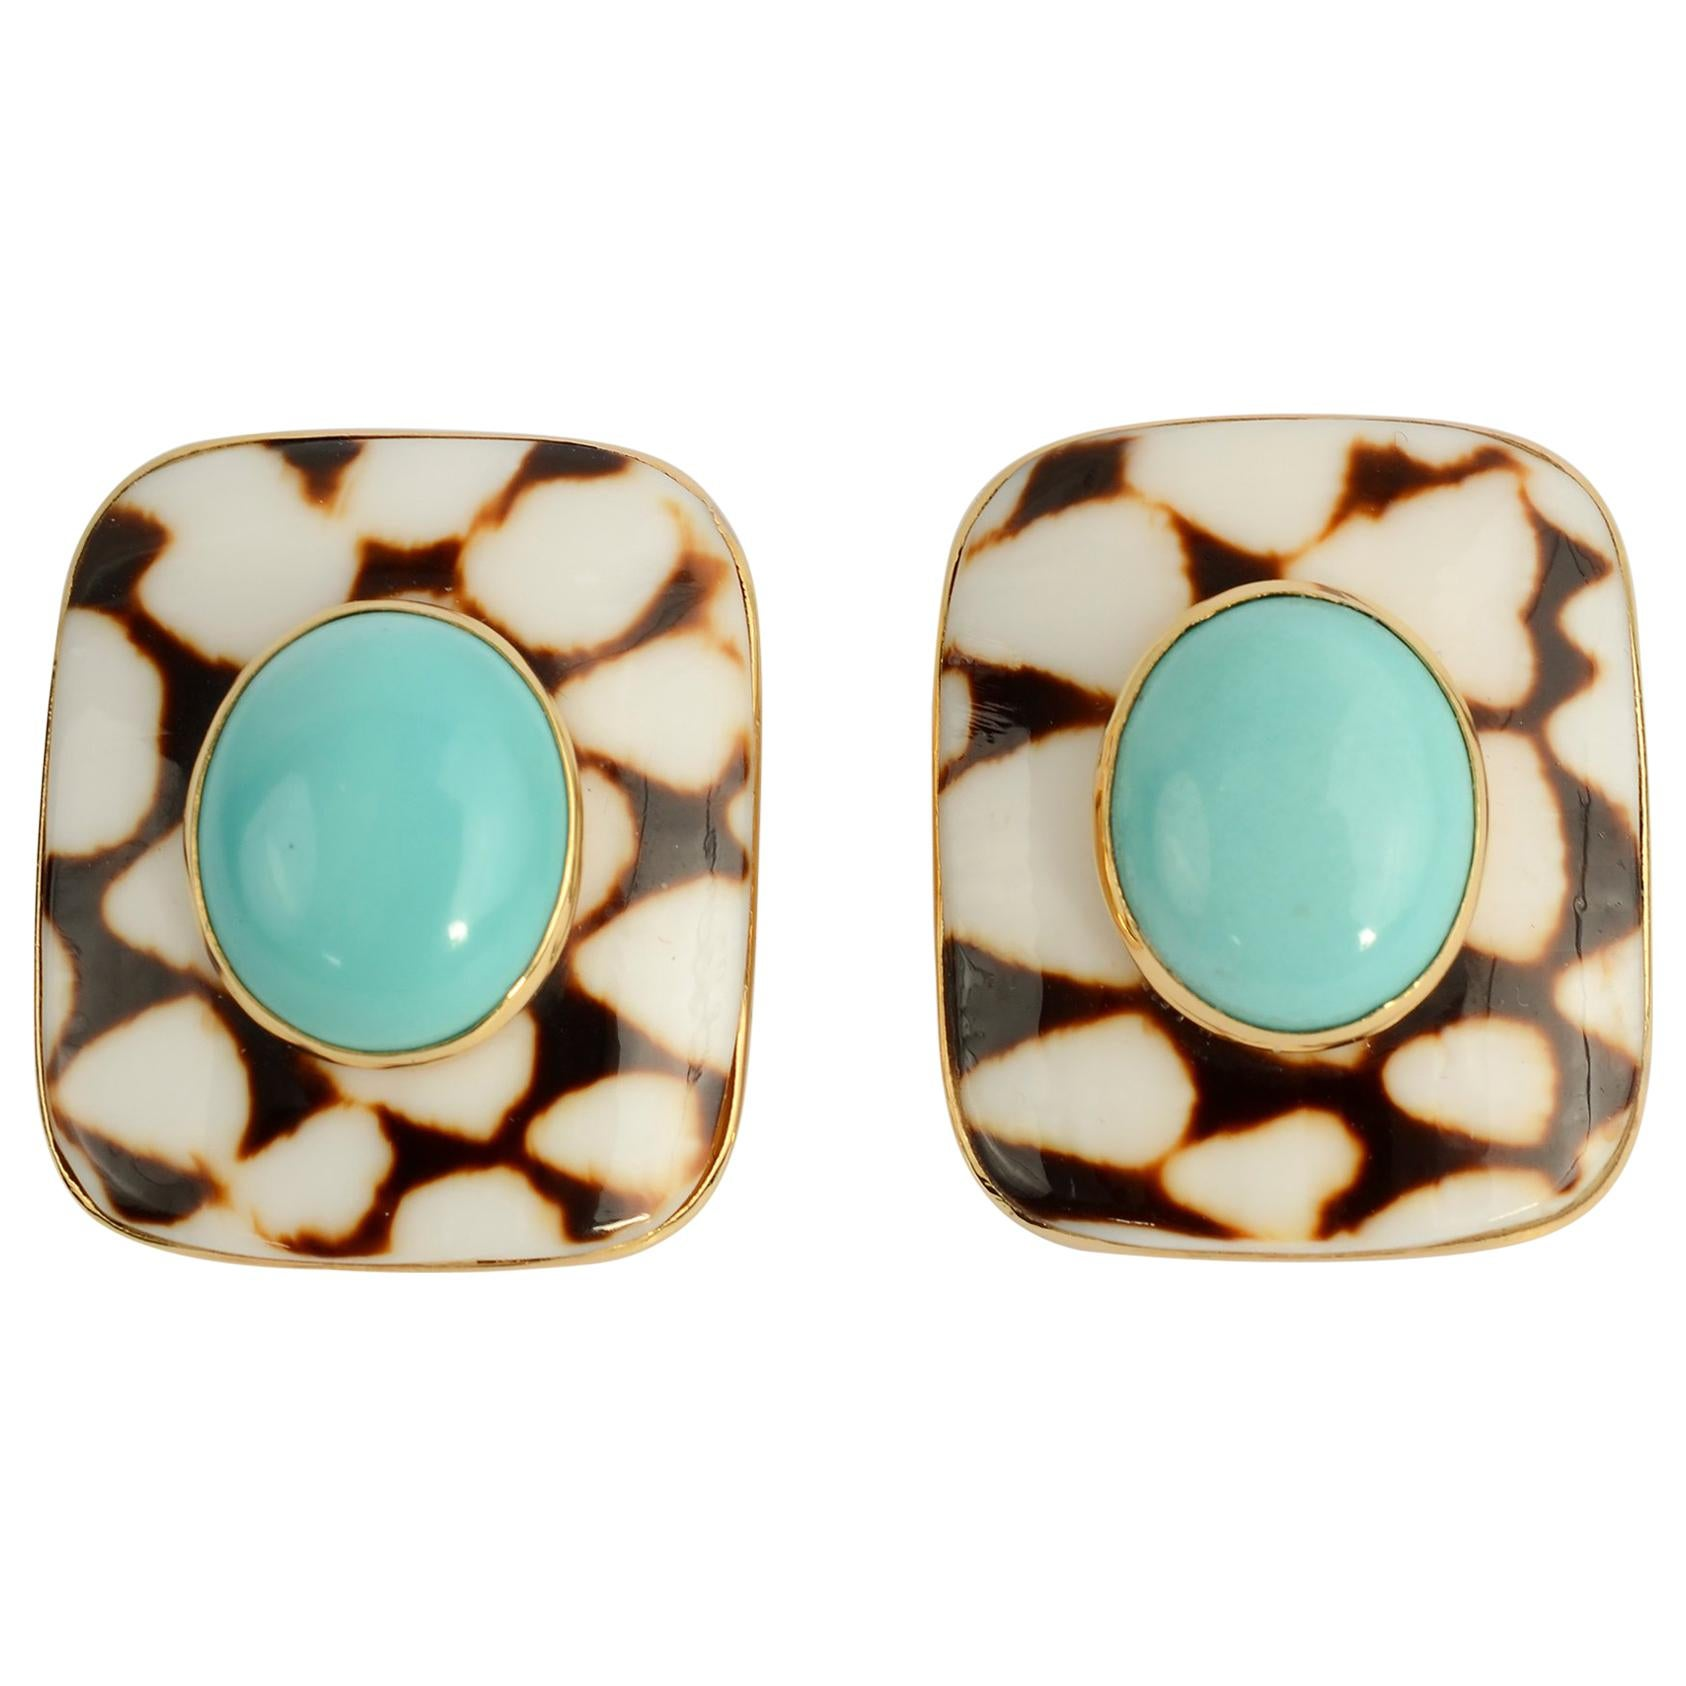 Trianon Shell Earrings with Turquoise